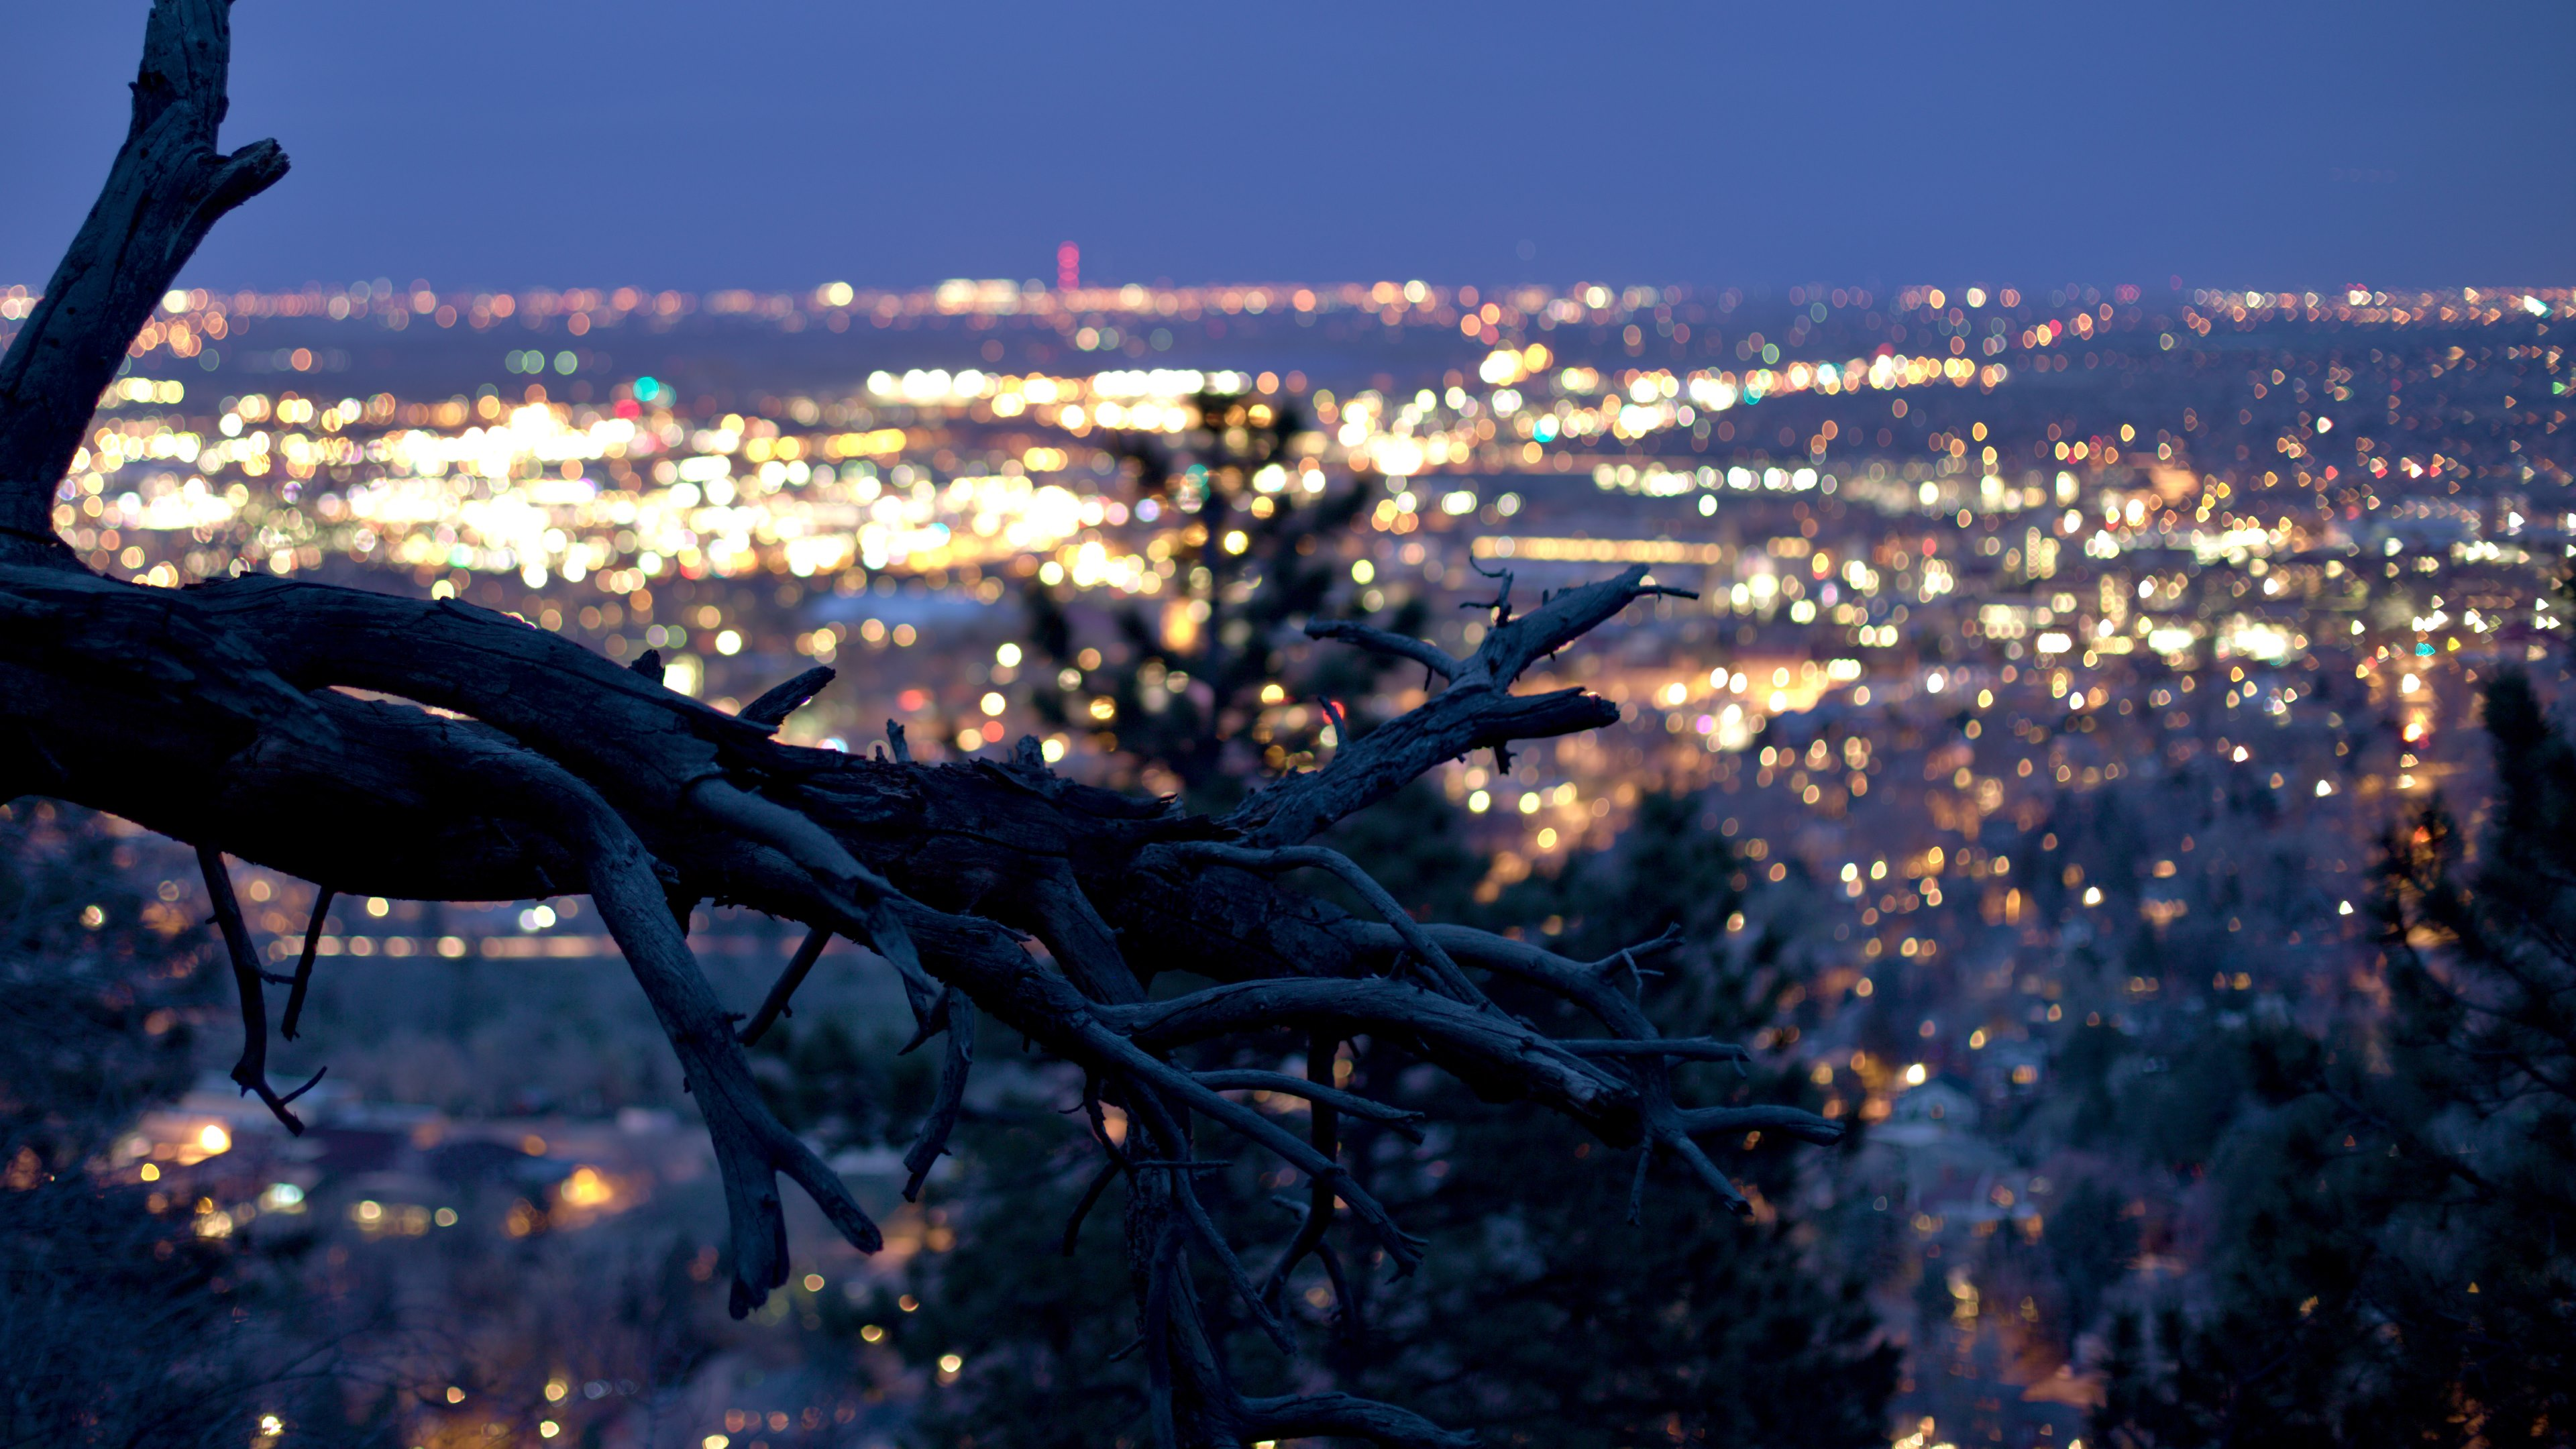 Hot Wallpaper Dry tree with the city lights in background 3840x2160